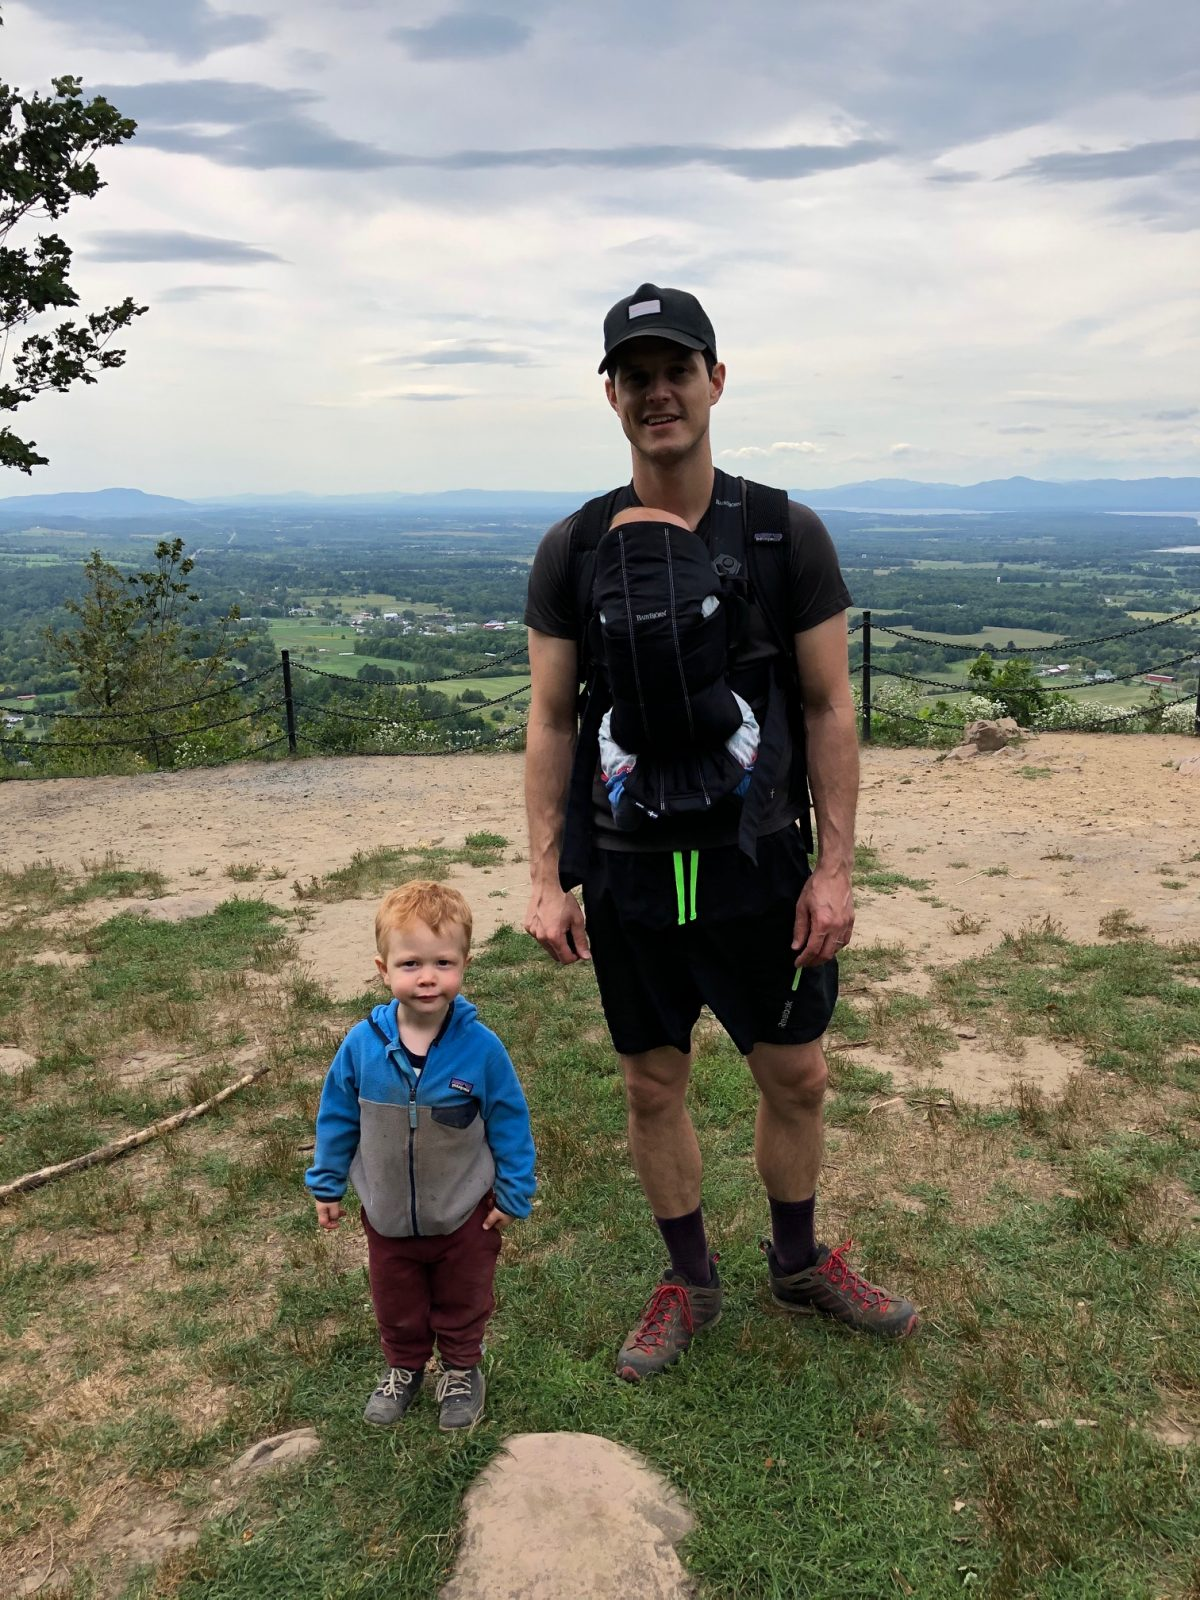 Carl and his kids on a hill with sky in the background in Vermont, 2020